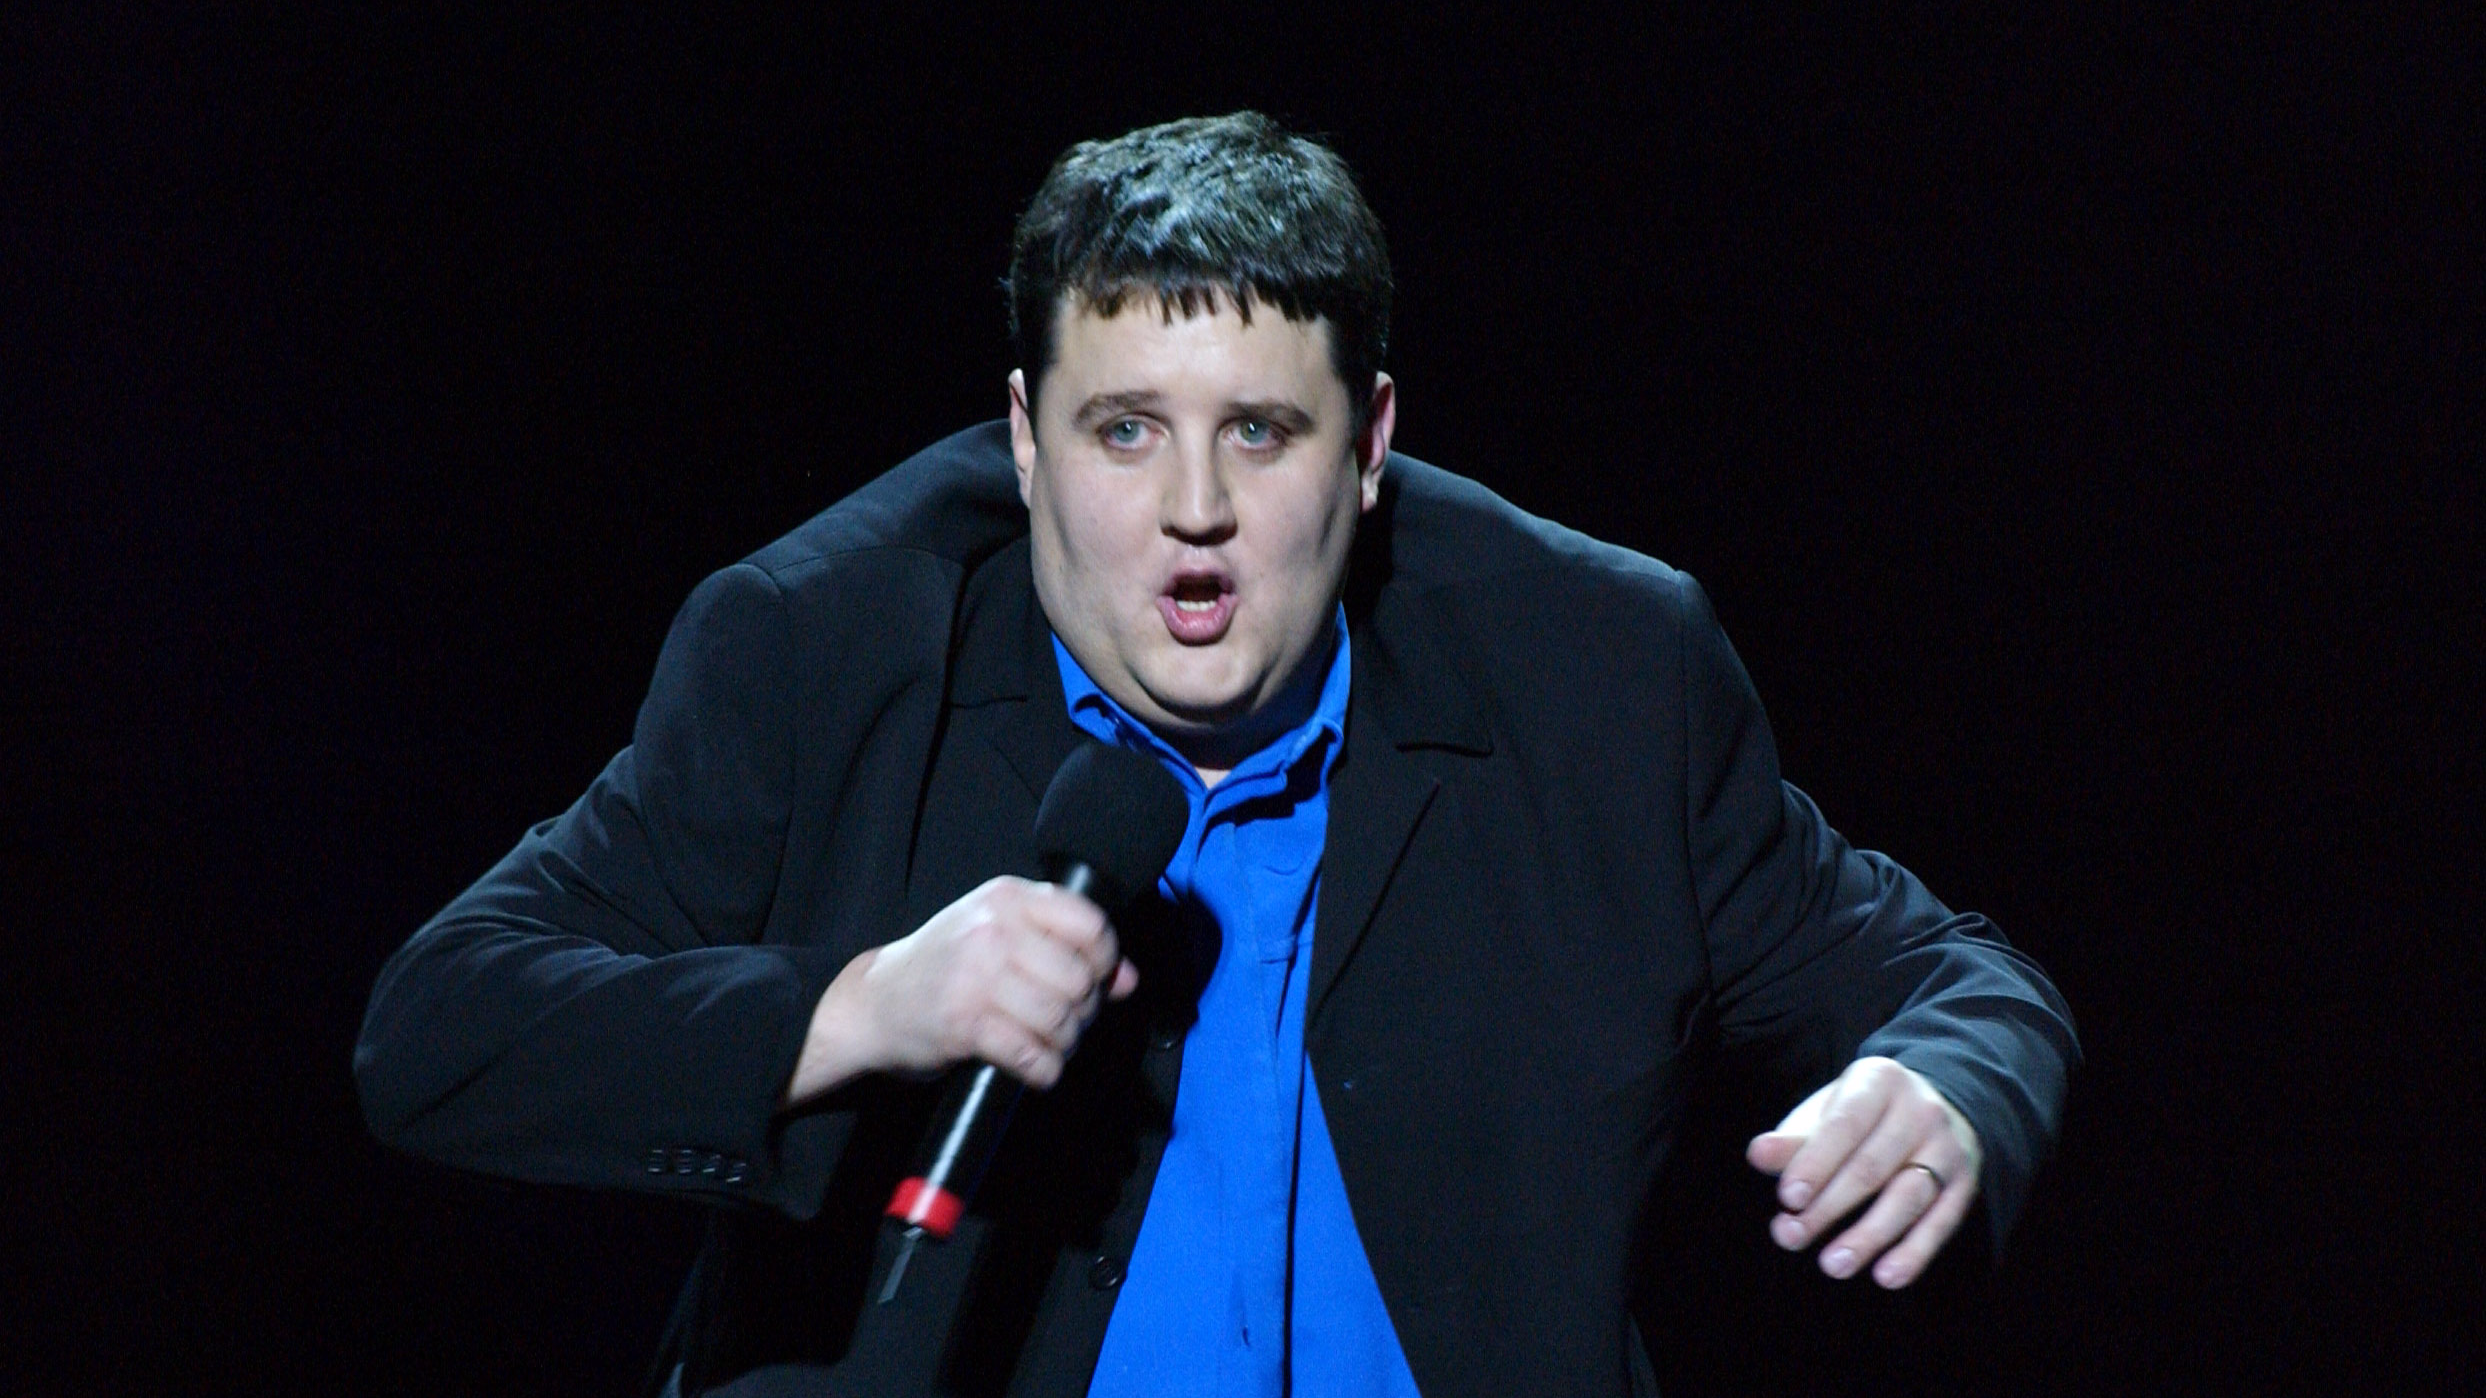 Peter Kay Can't Ask For Garlic Bread, For Obvious Reasons